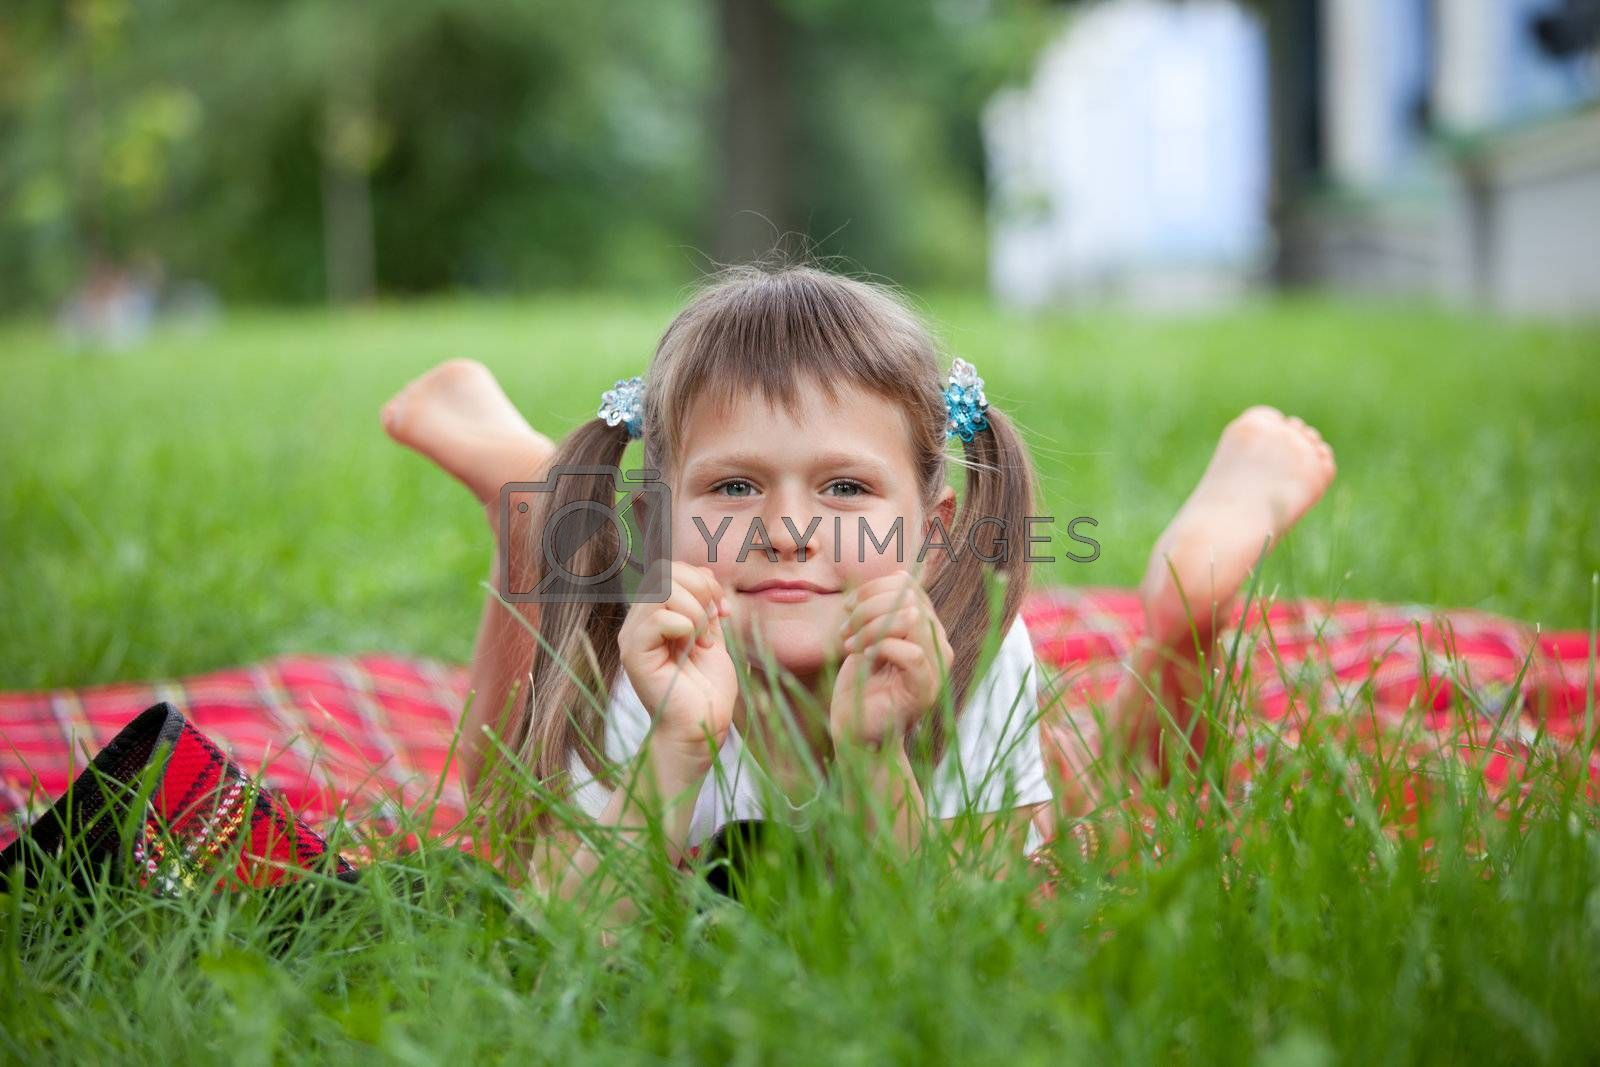 Portrait of little cute blond girl preschooler with ponytails who is lying on red plaid in park with green grass summer